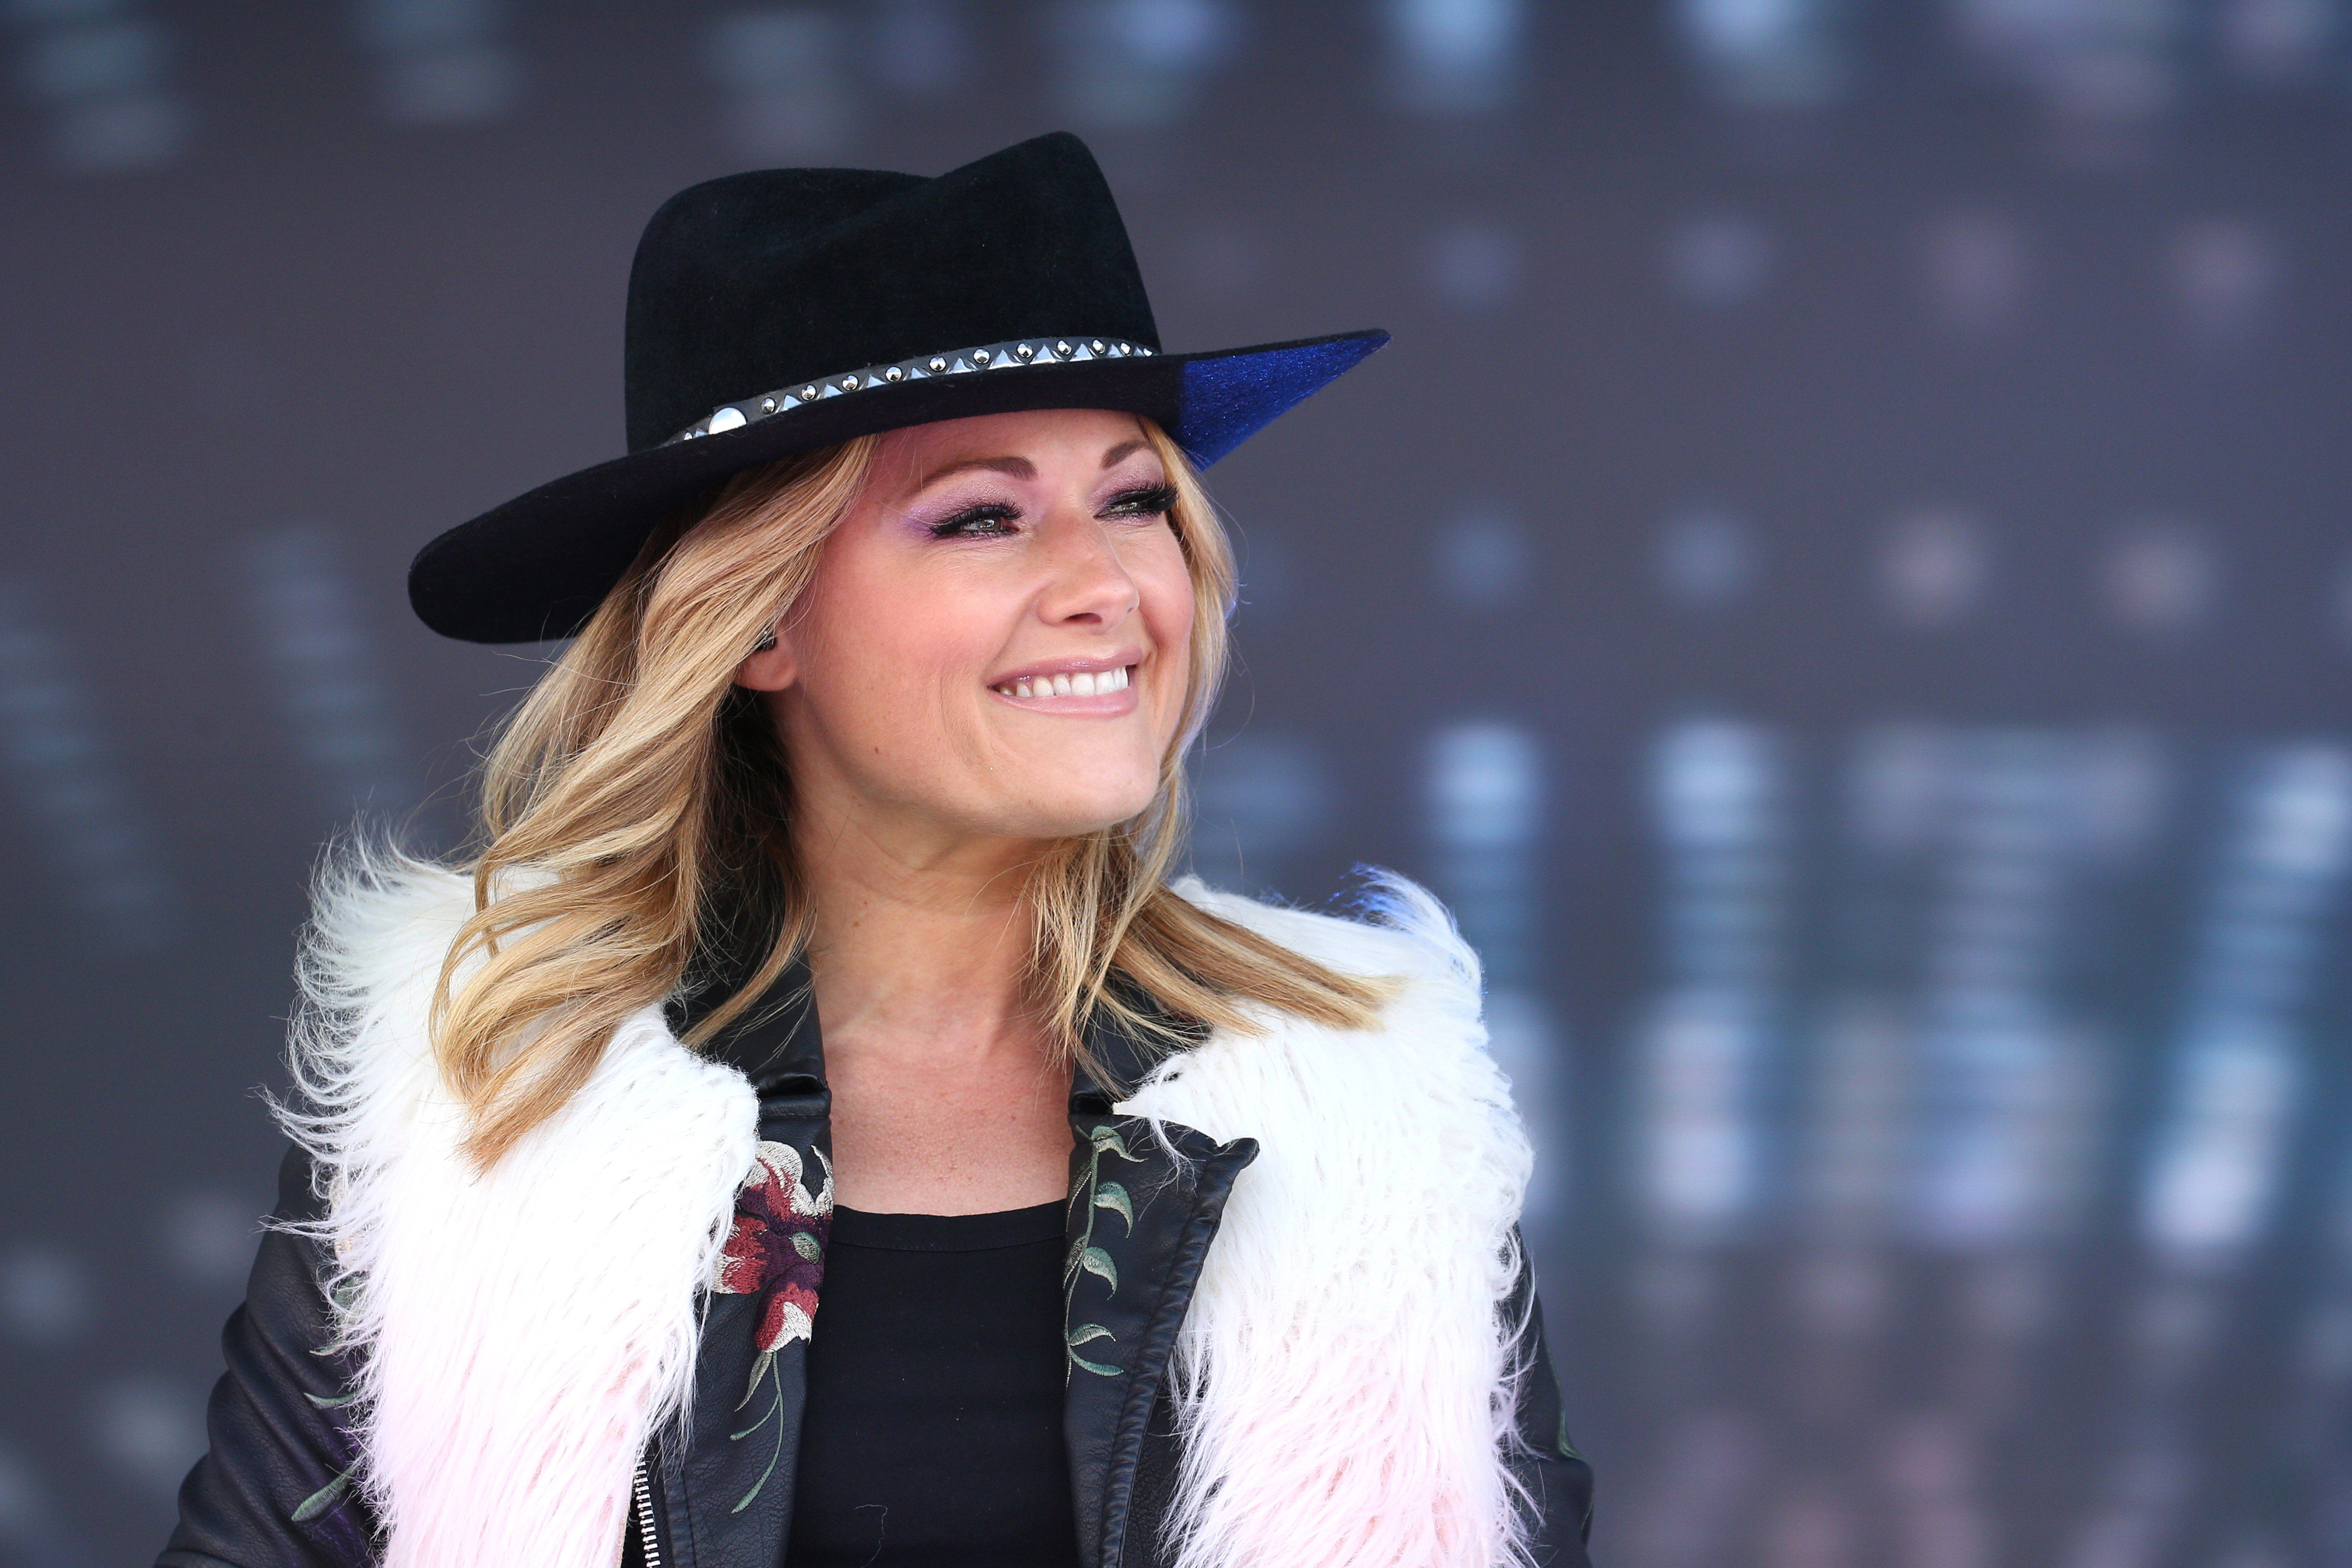 Helene Fischer Performs At The Top Of The Mountain Concert ヘレーネ・フィッシャー